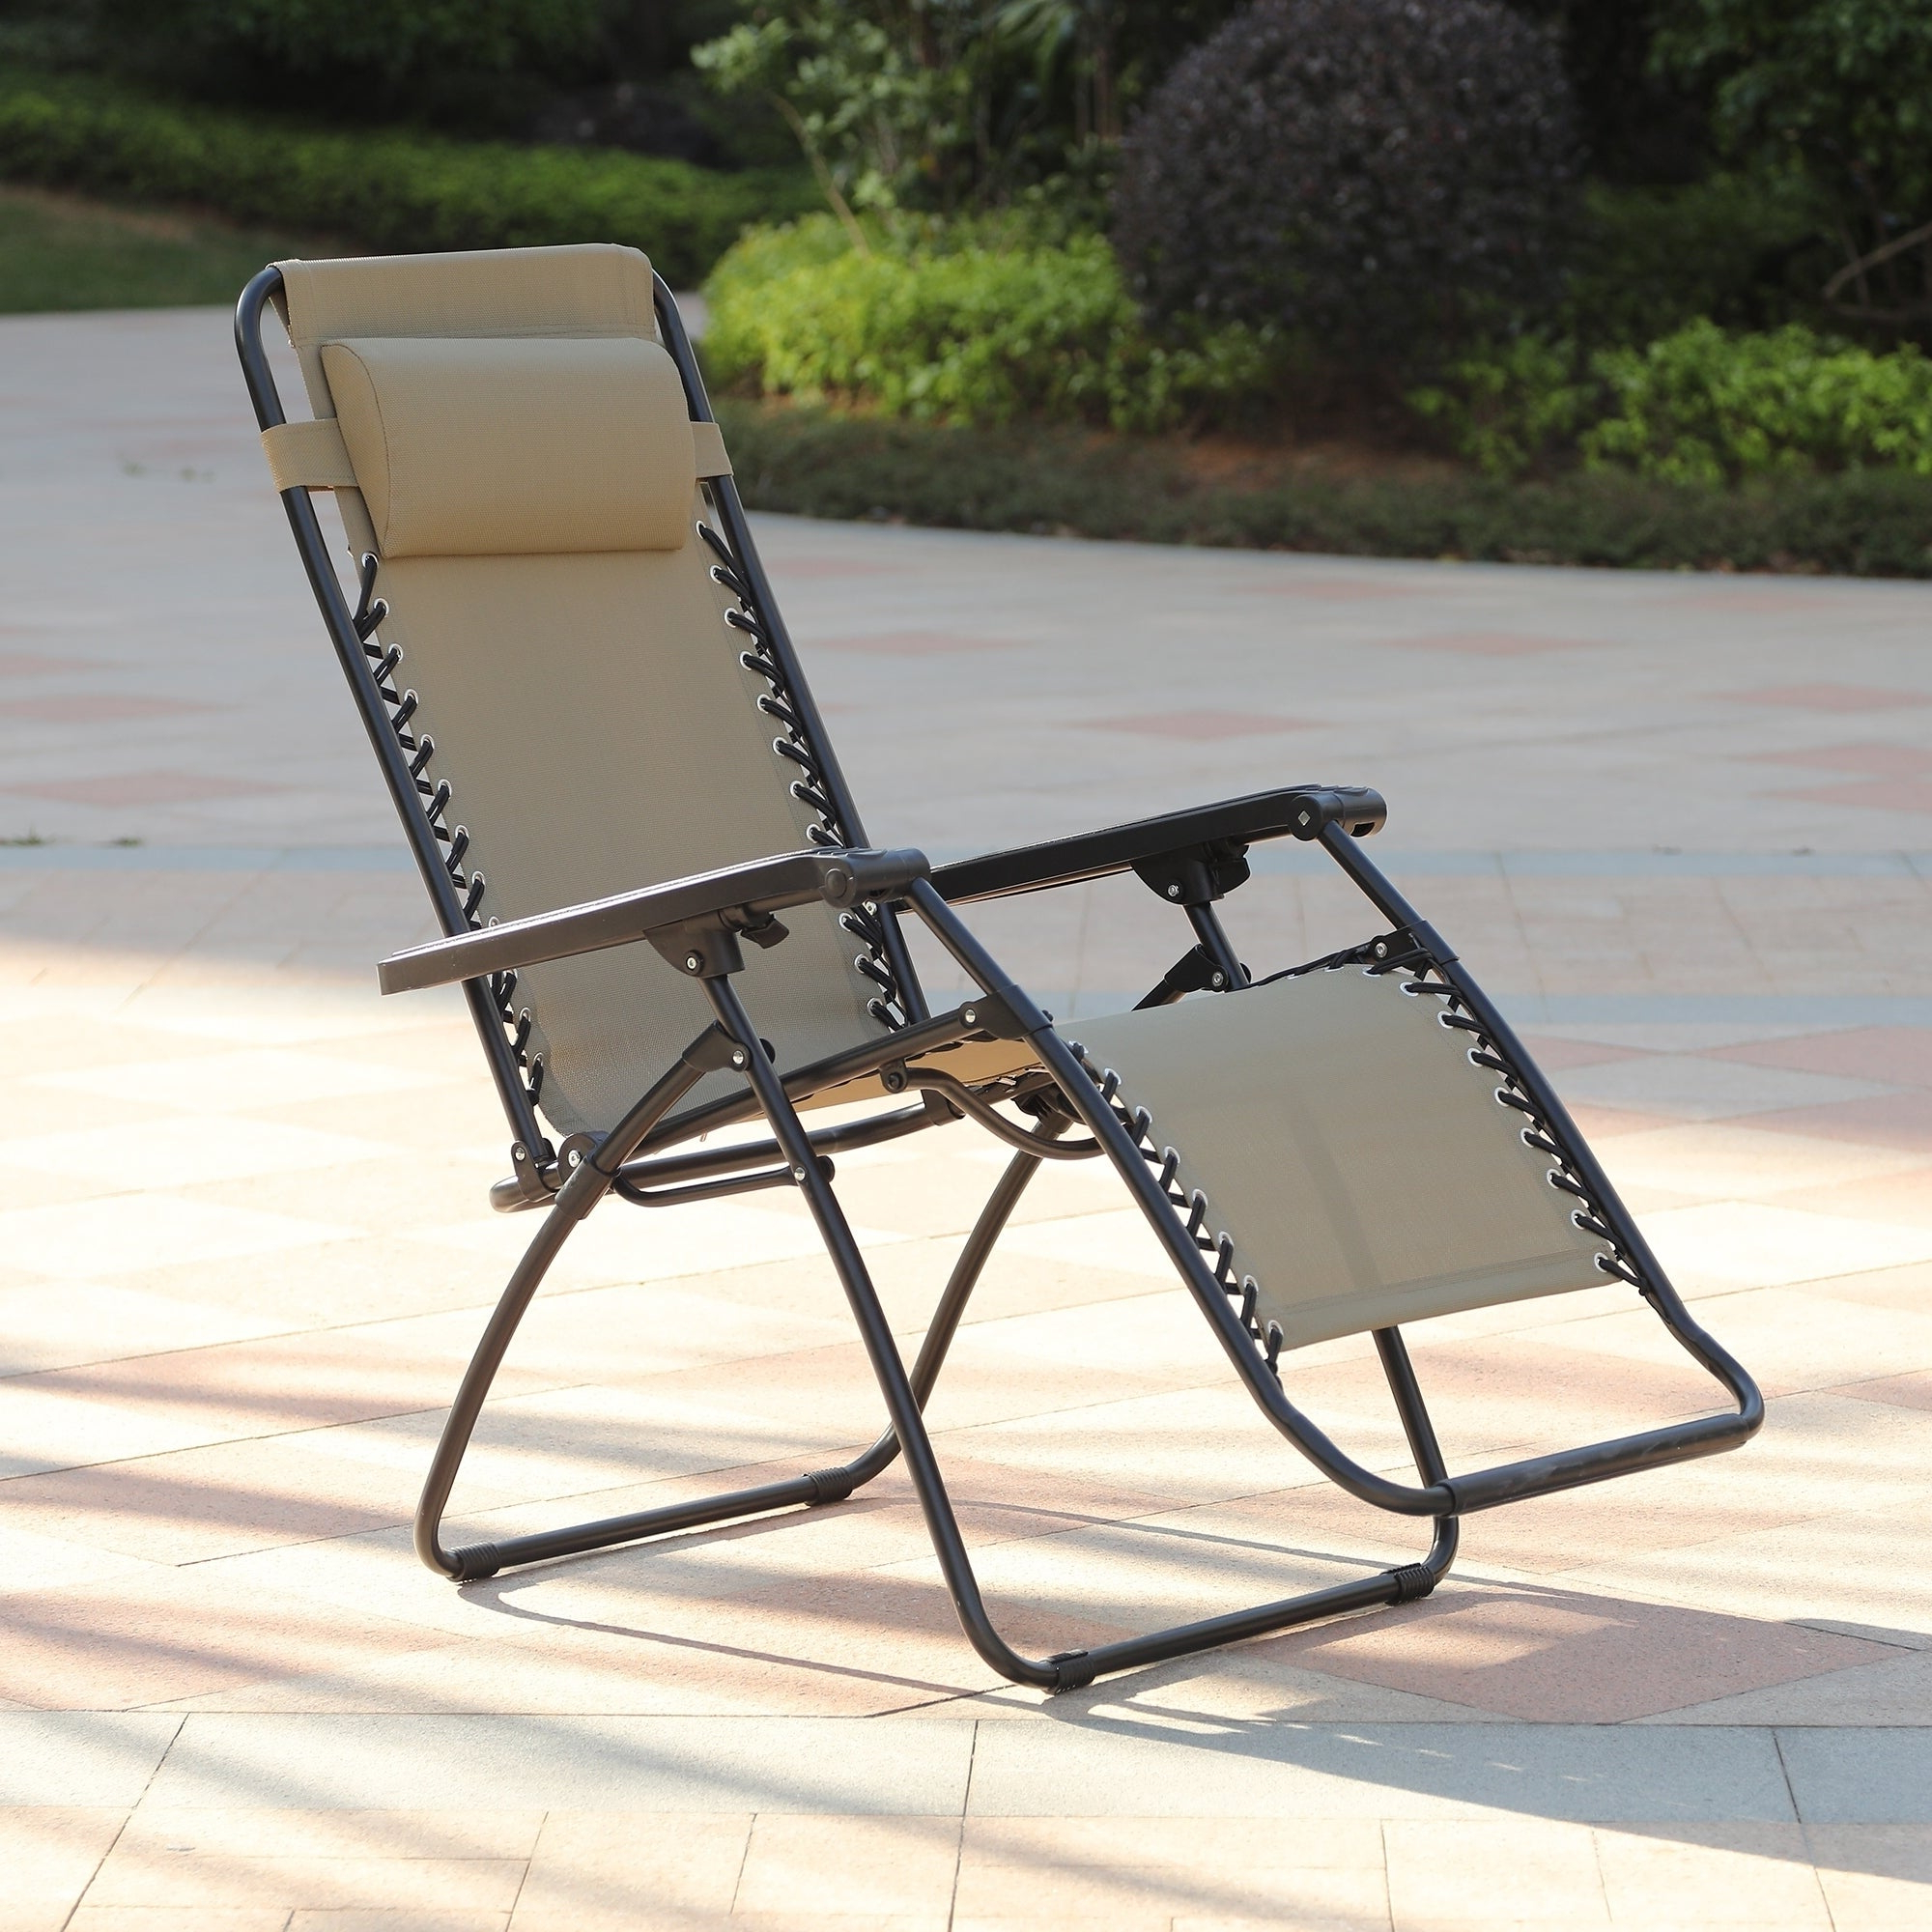 Mesh Fabric With Steel Frame Chairs With Canopy And Tray Pertaining To Fashionable Havenside Home Glovertown Zero Gravity Chair (Gallery 11 of 25)